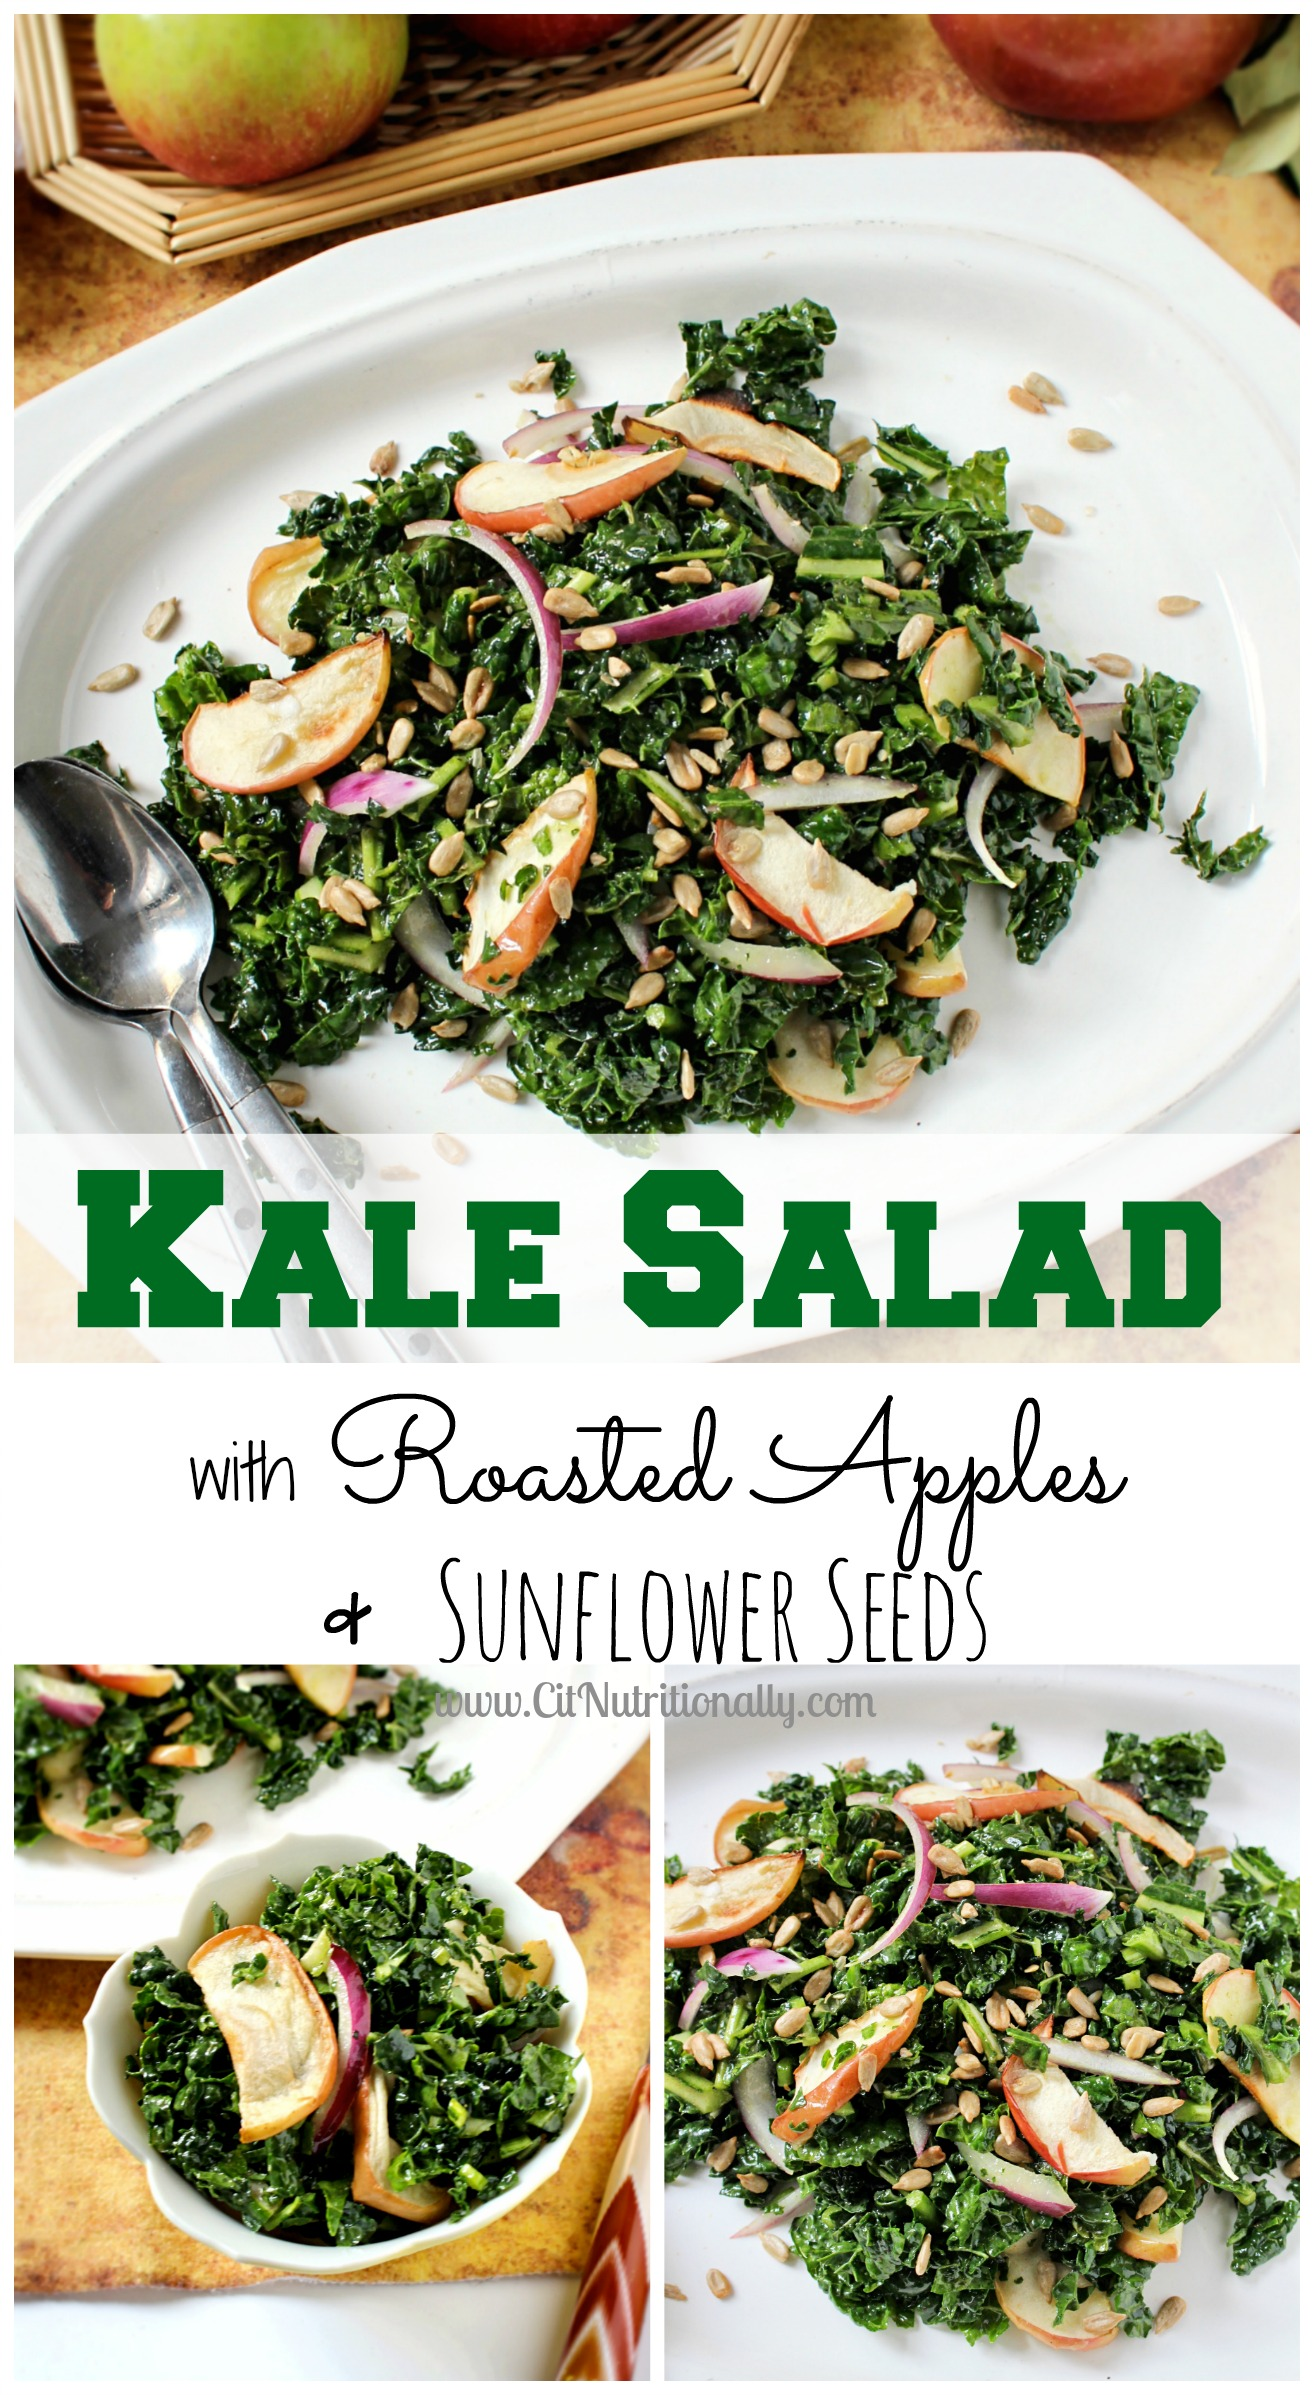 Kale Salad with Roasted Apples & Sunflower Seeds | C it Nutritionally